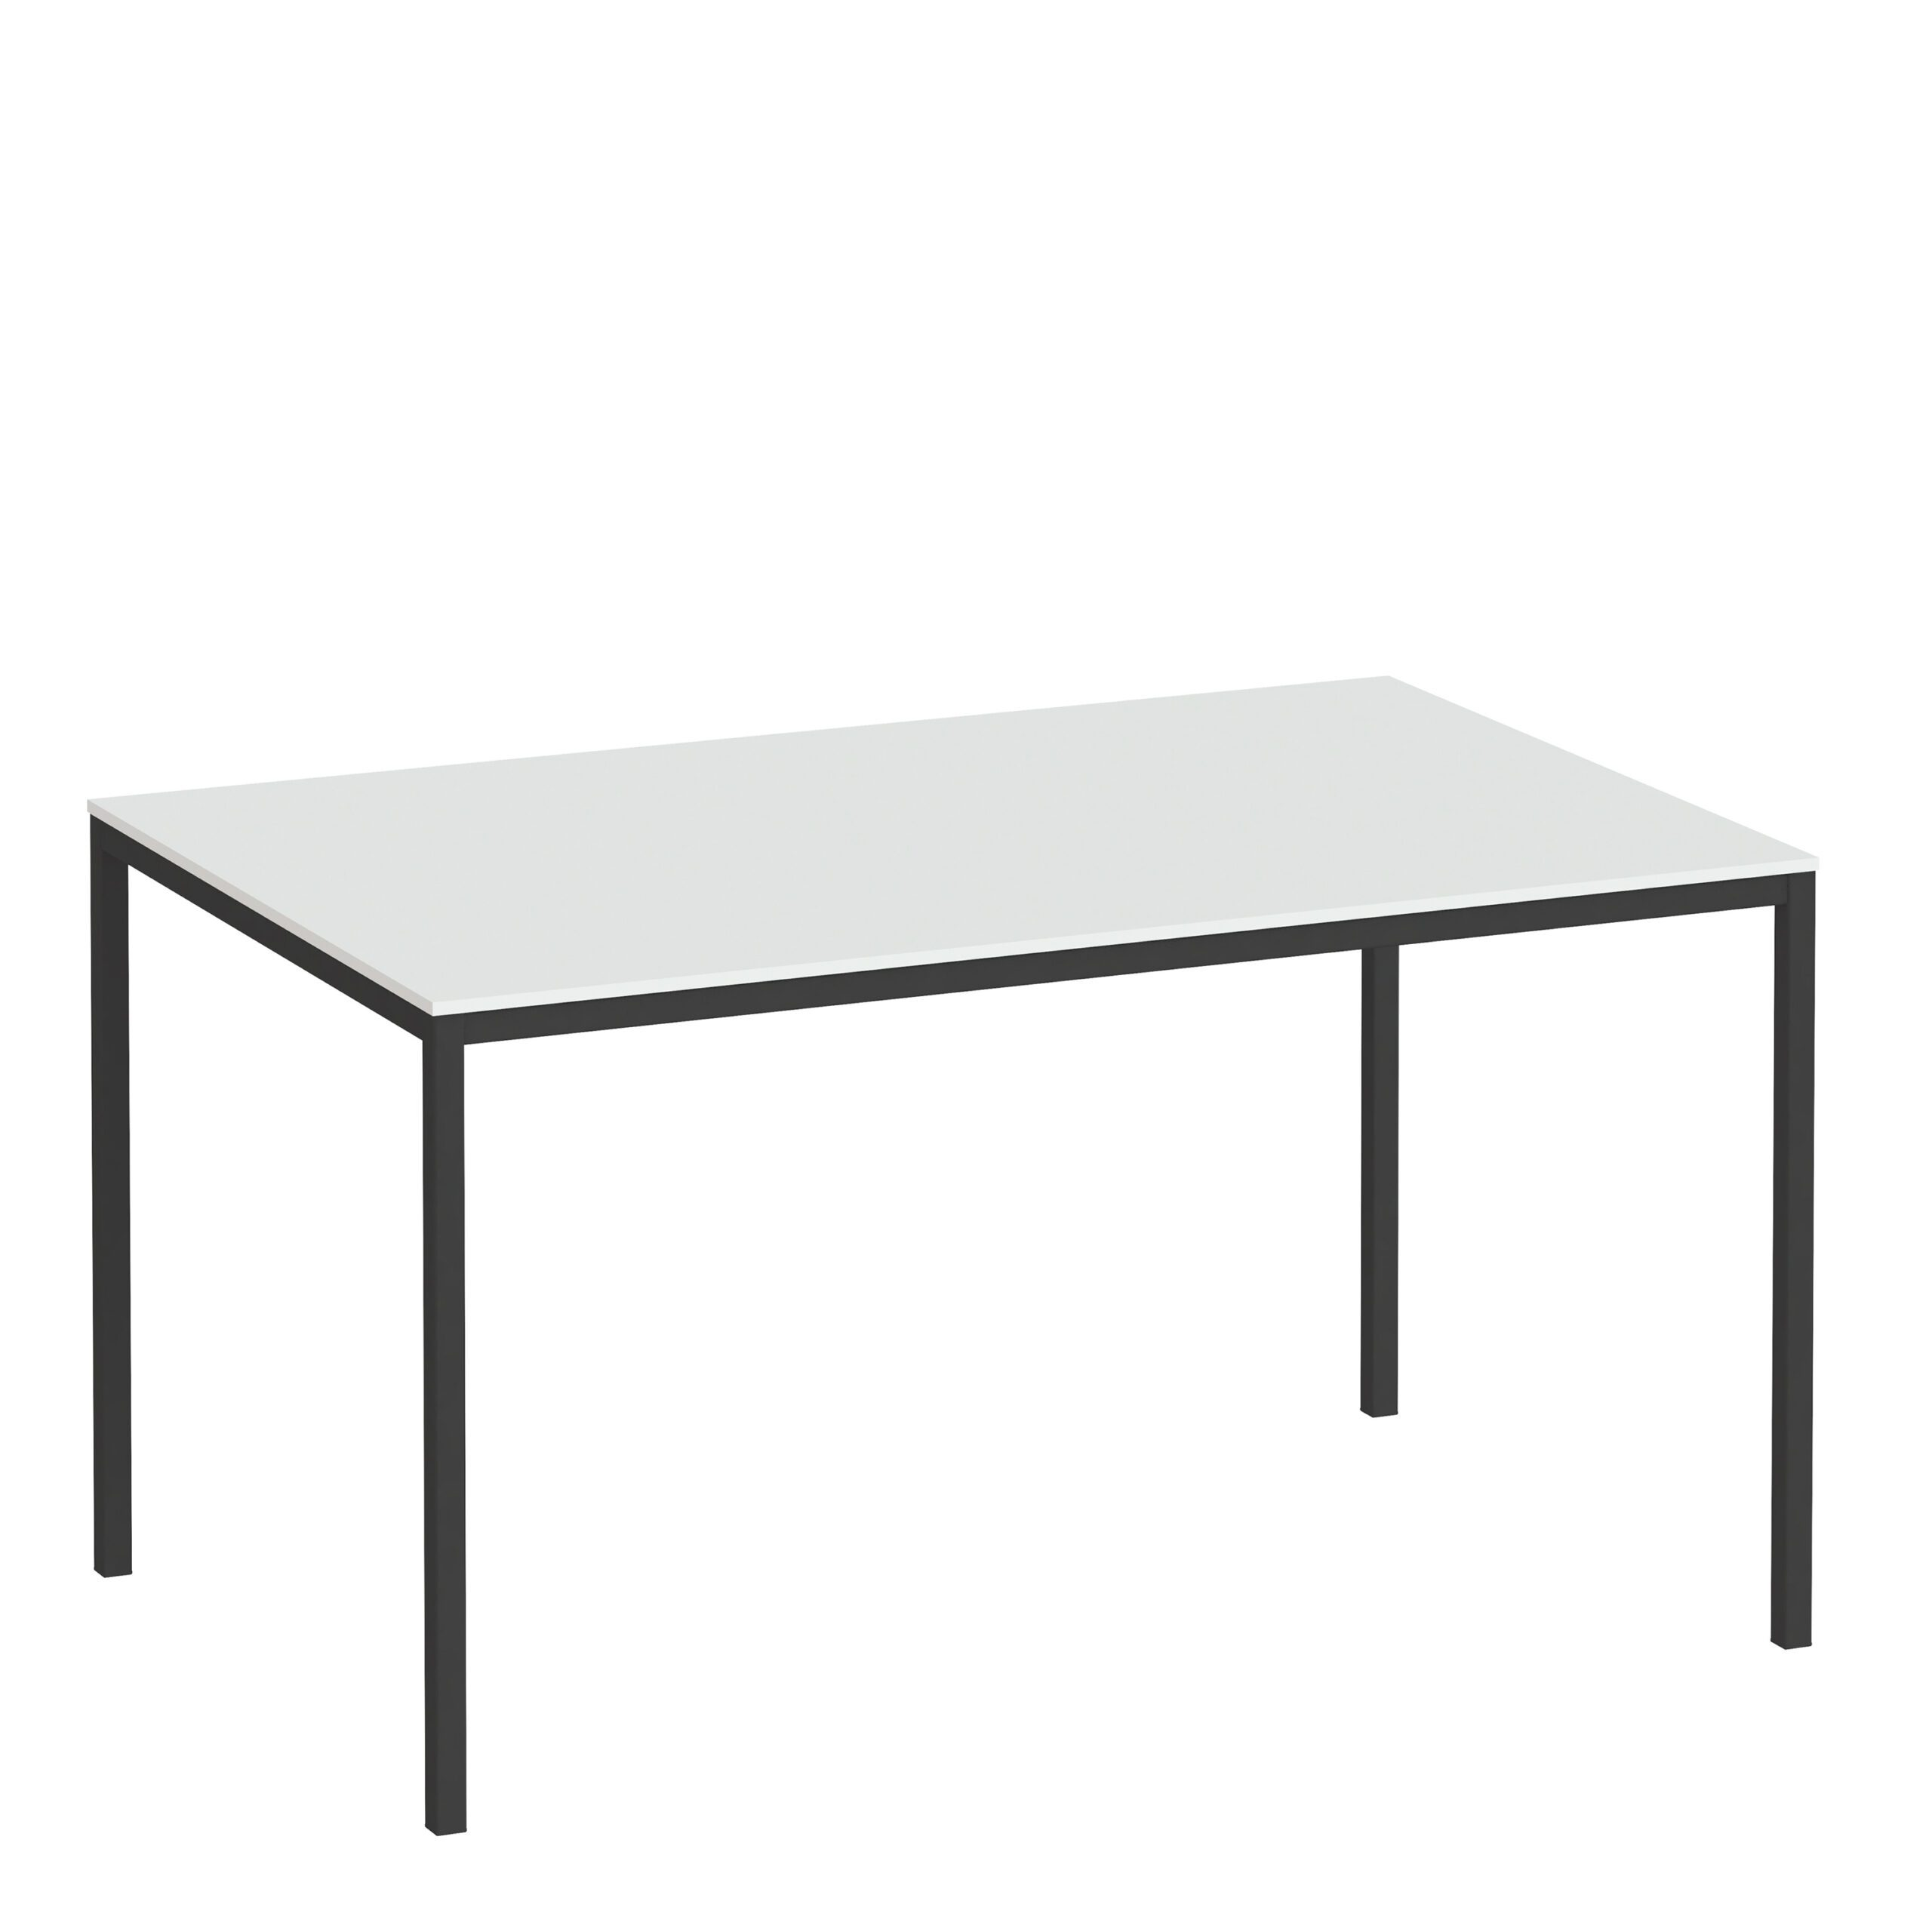 Folks Dining Table 140cm White Table Top with Black Legs